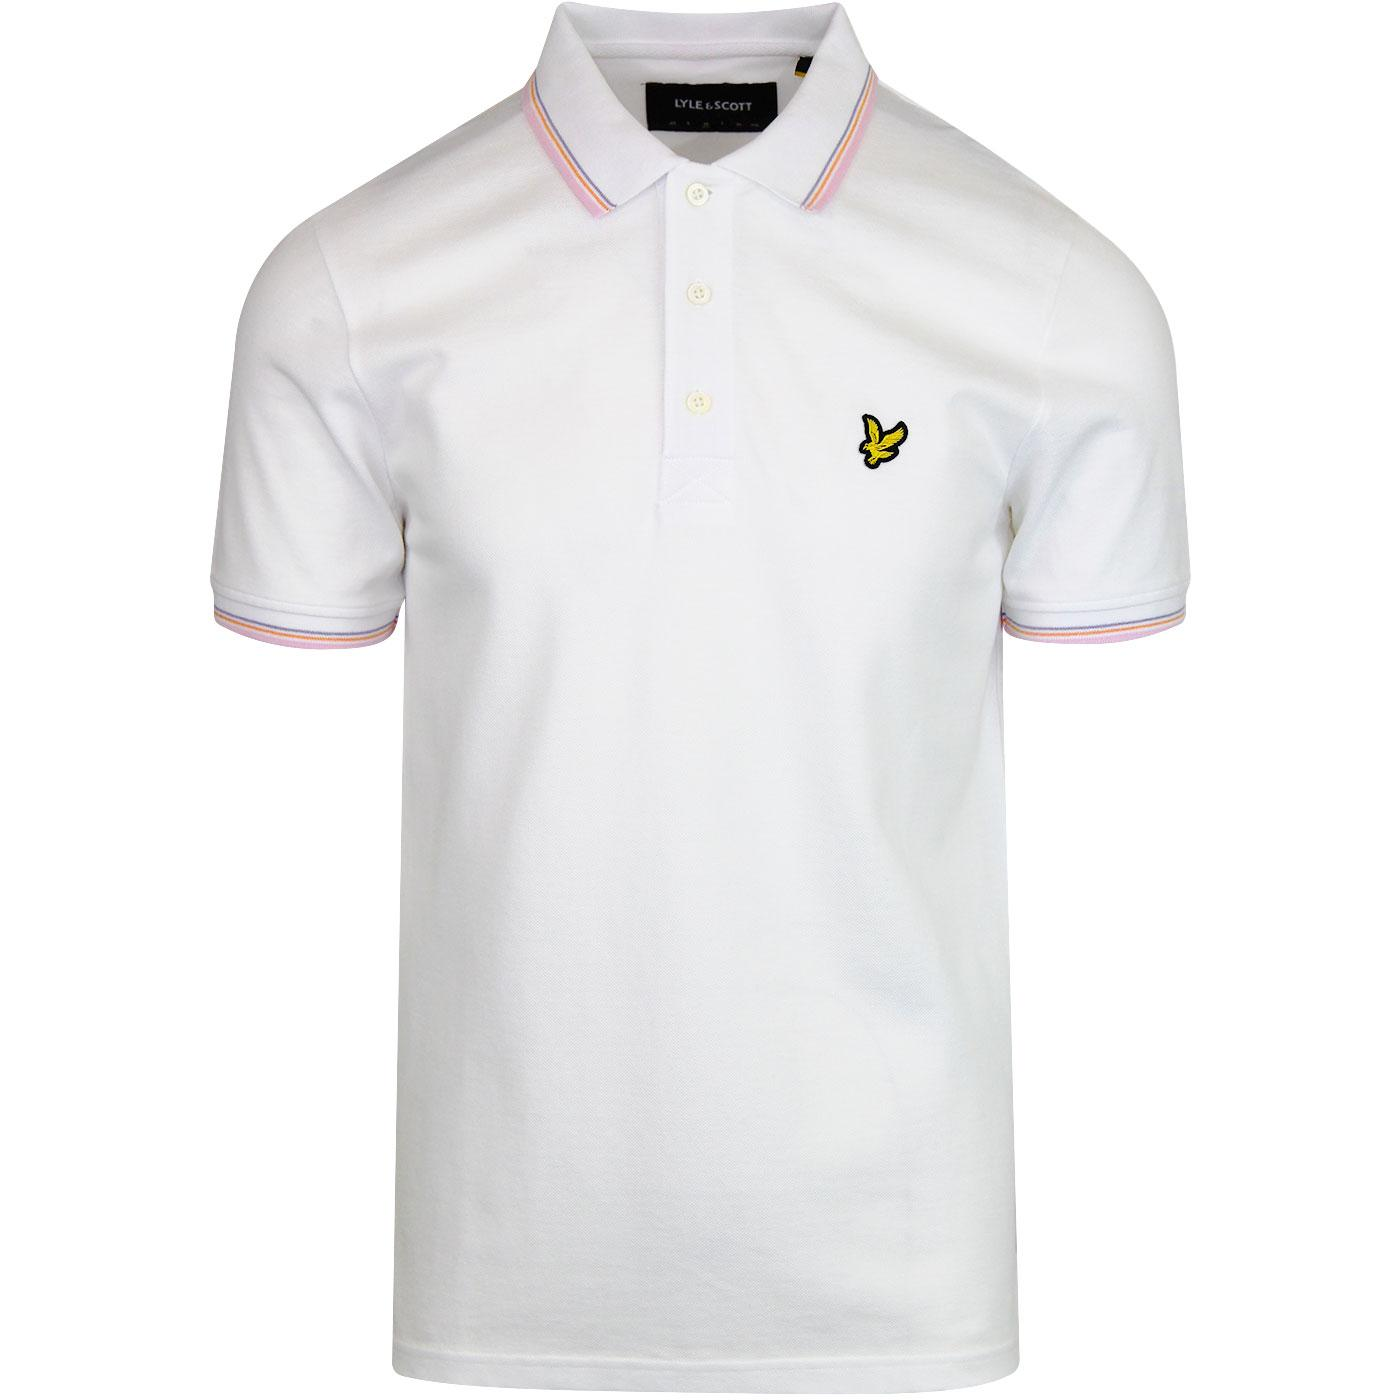 LYLE & SCOTT Retro Mod Tipped Pique Polo Top WHITE